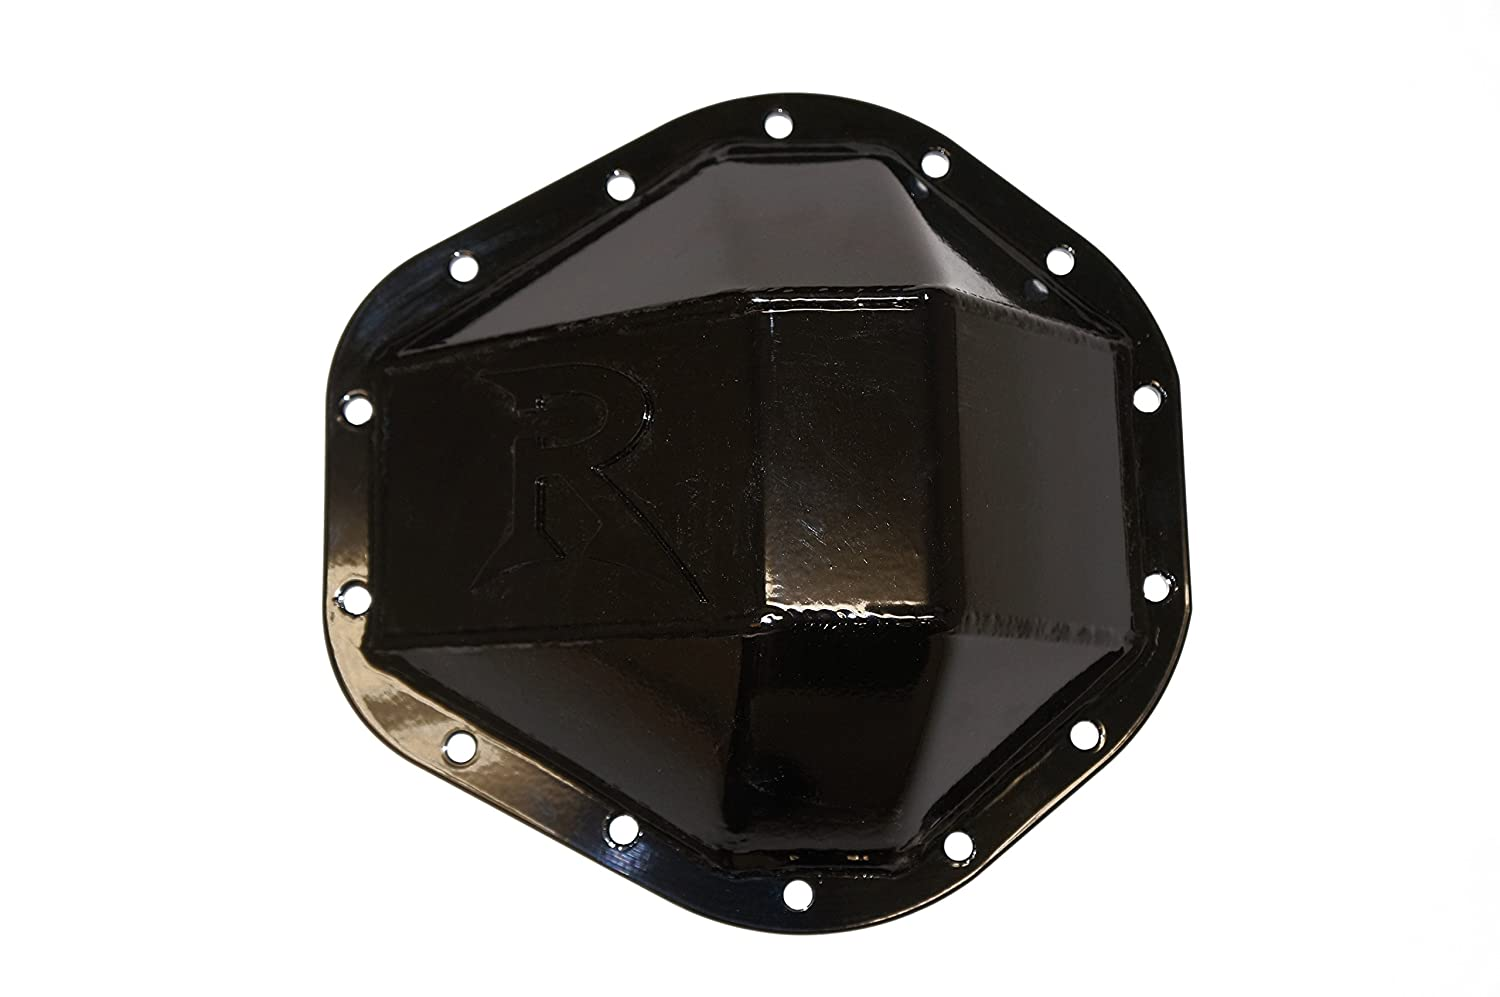 Rusty's Off-Road Heavy-Duty Differential Cover - GM 14-Bolt Rusty' s Off-Road